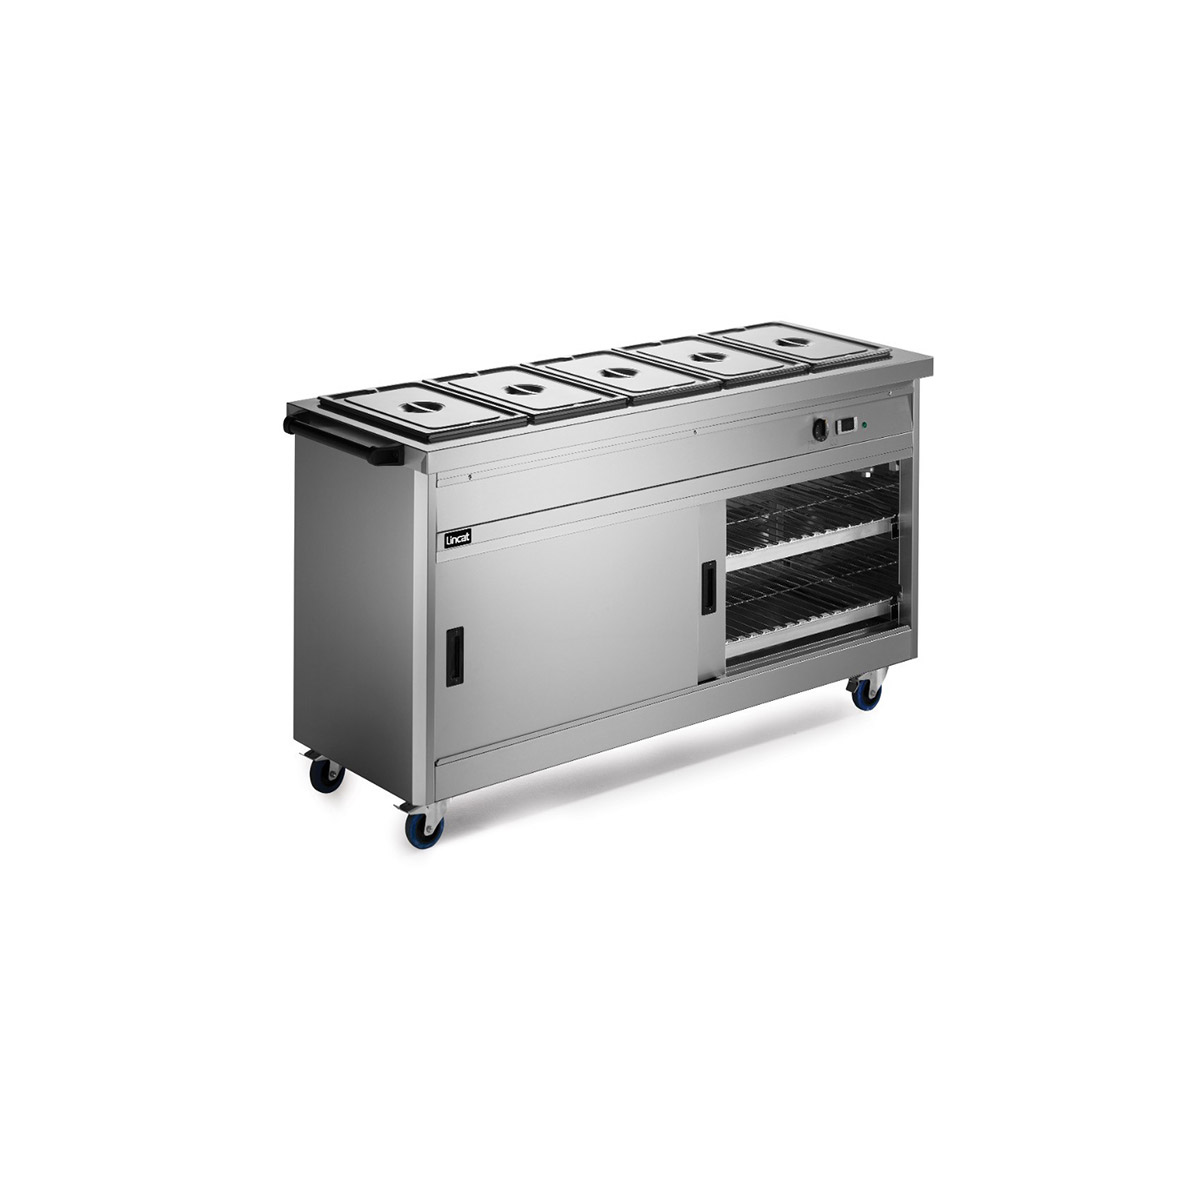 P6B5 - Lincat Panther 670 Series Free-standing Hot Cupboard - Bain Marie Top - 5GN - W 1855 mm - 5.2 kW